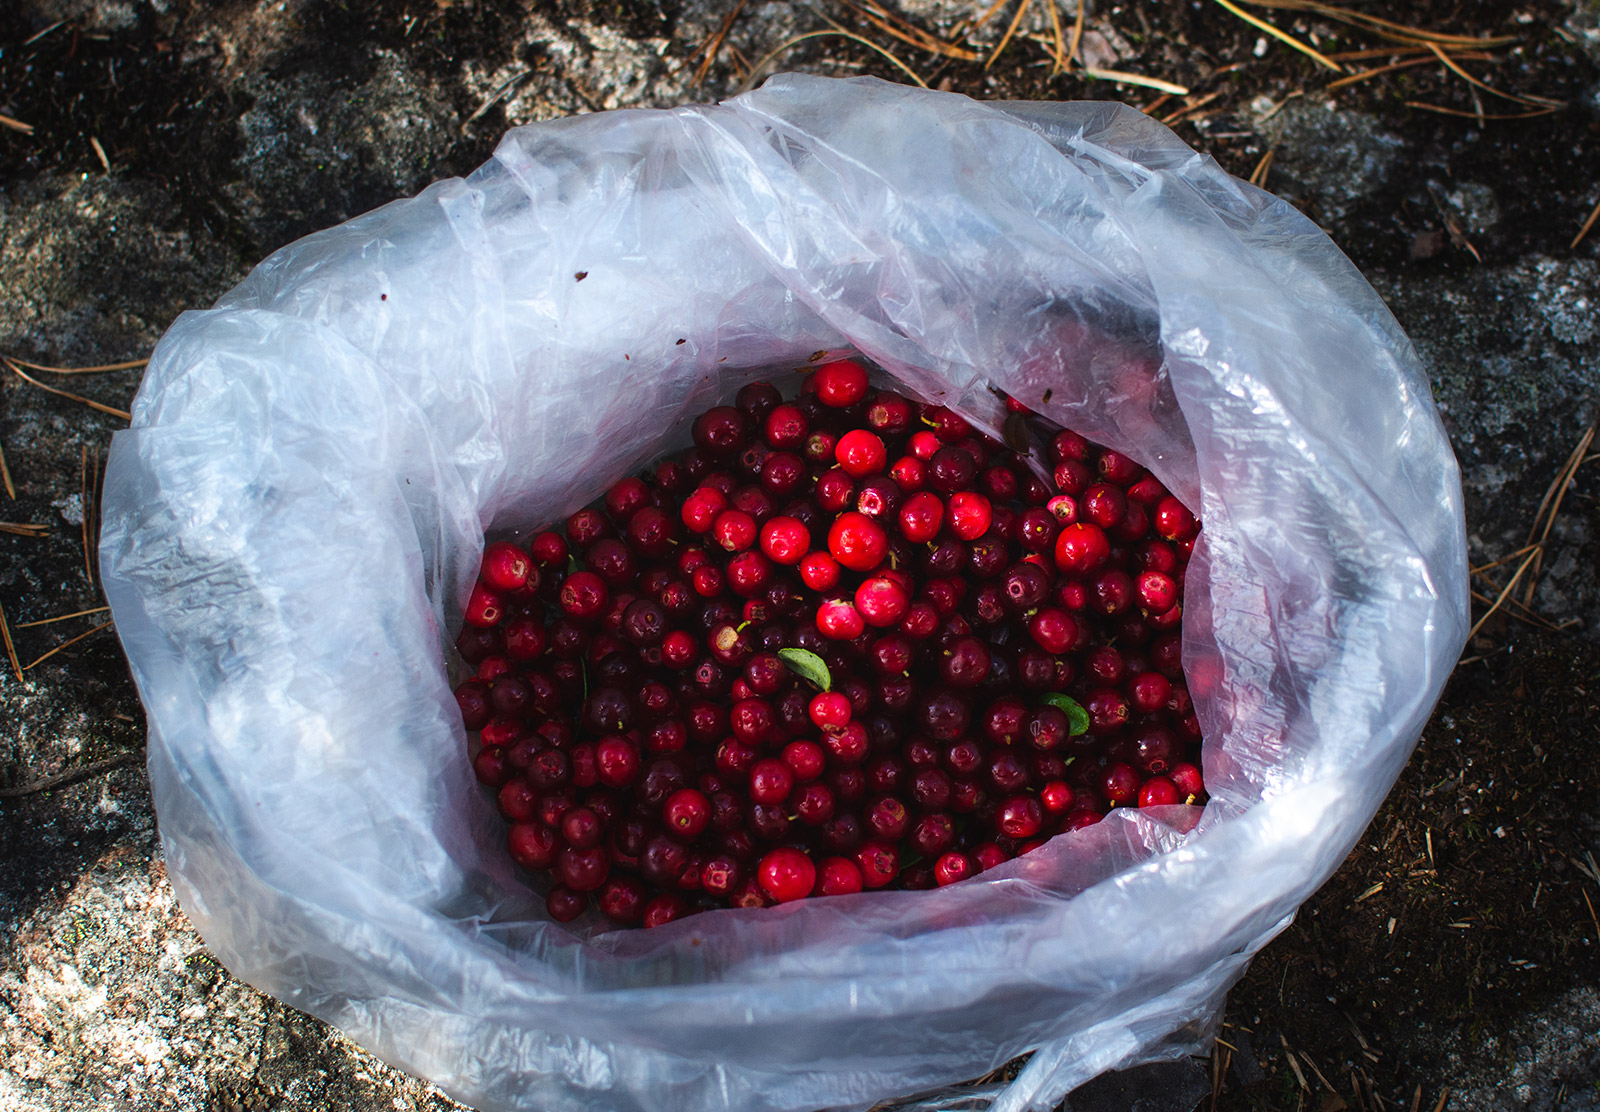 Red berries in bag